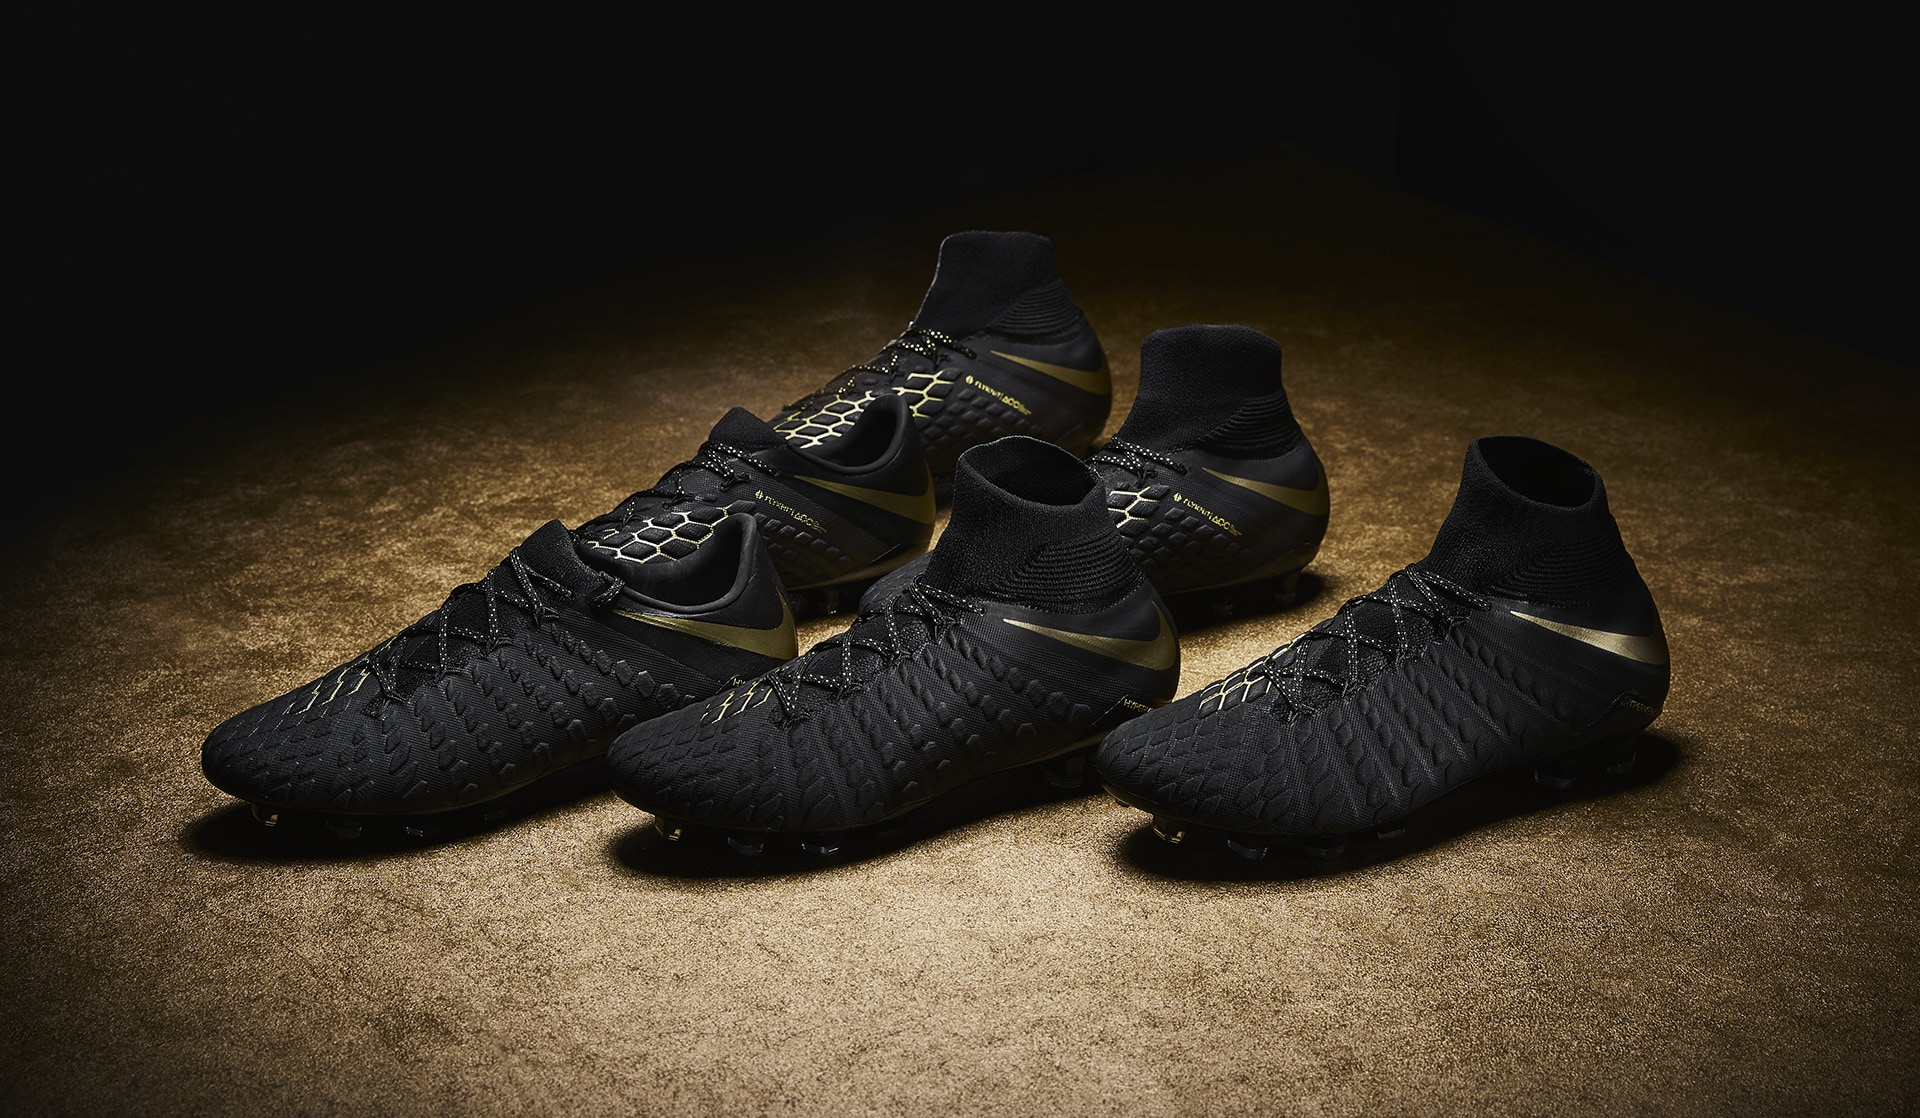 Chaussures de foot Nike Hypervenom Game of Gold